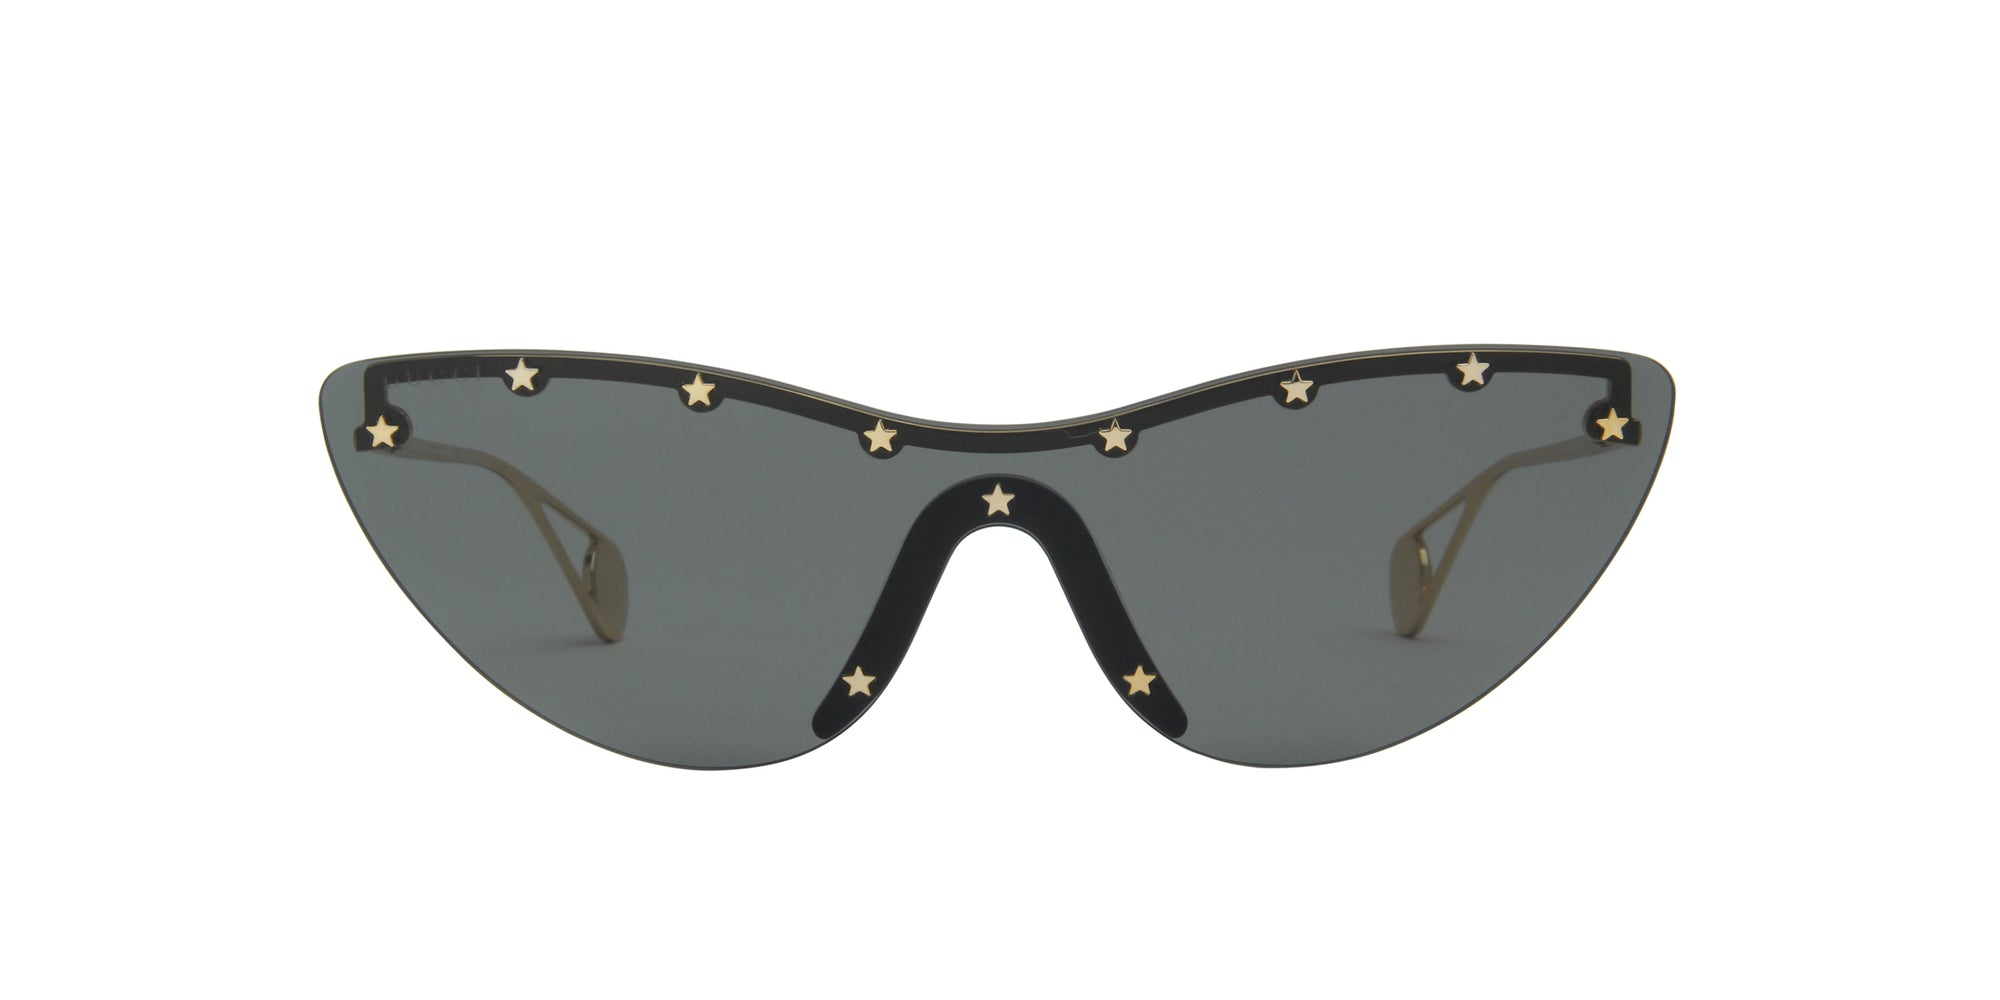 Gucci - GG0666S Gold/Grey Shield Women Sunglasses - 99mm